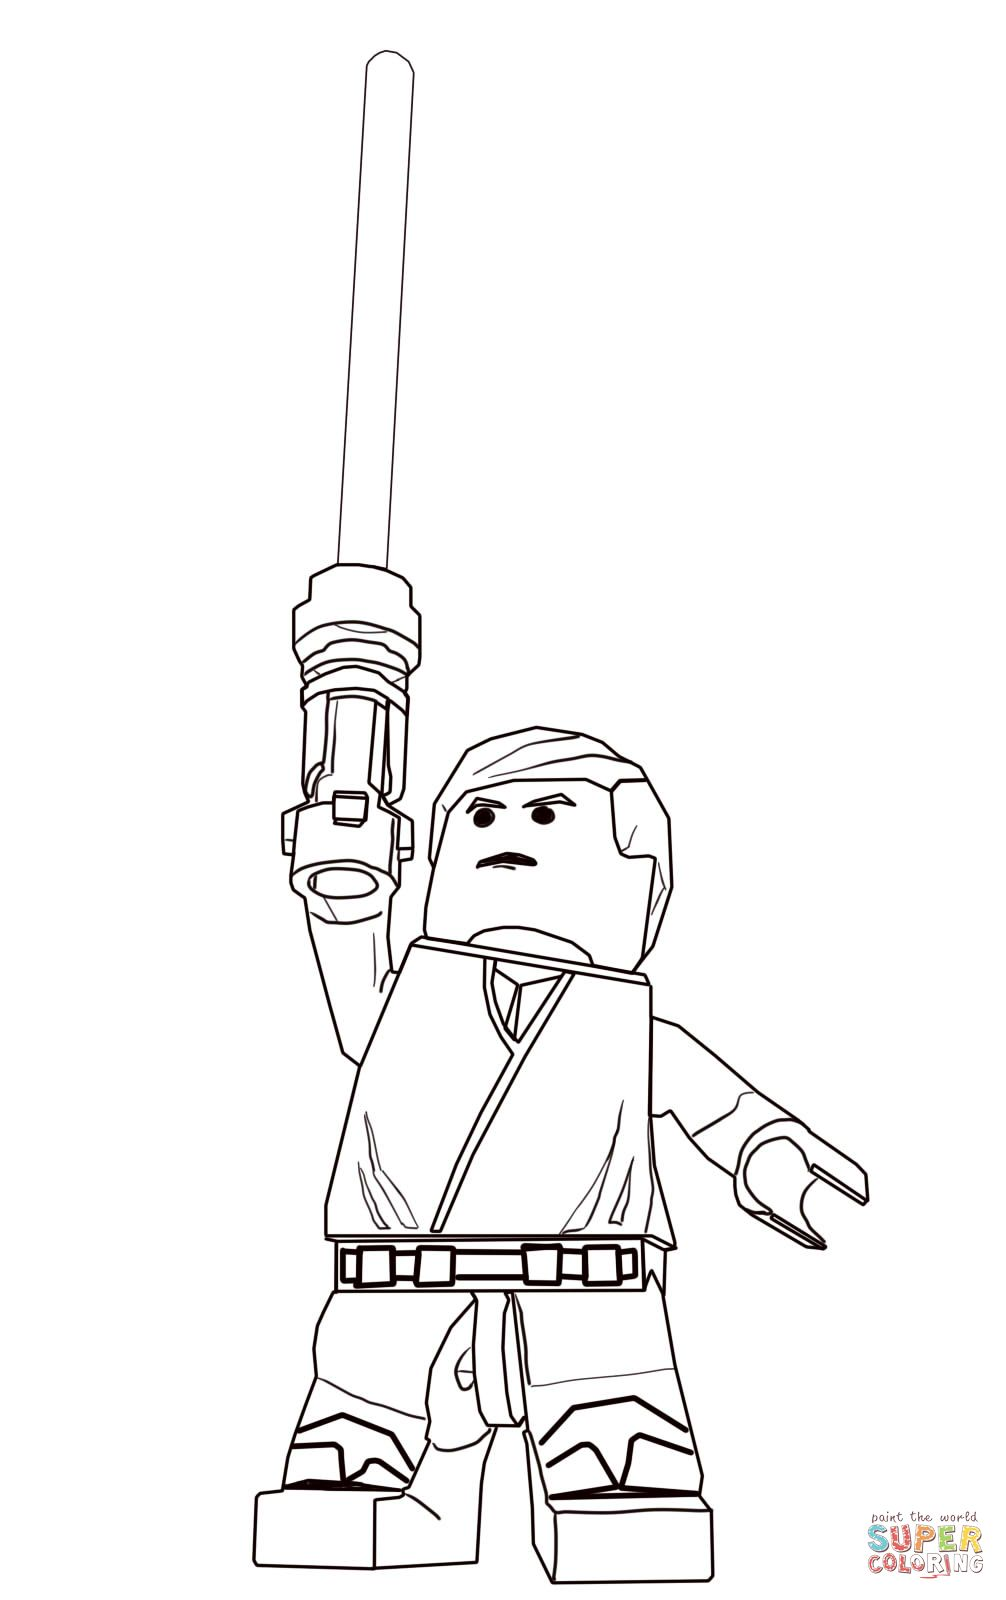 Lego Star Wars Luke Skywalker Coloring Page Supercoloring Com Star Wars Malbuch Ausmalbilder Star Wars Character